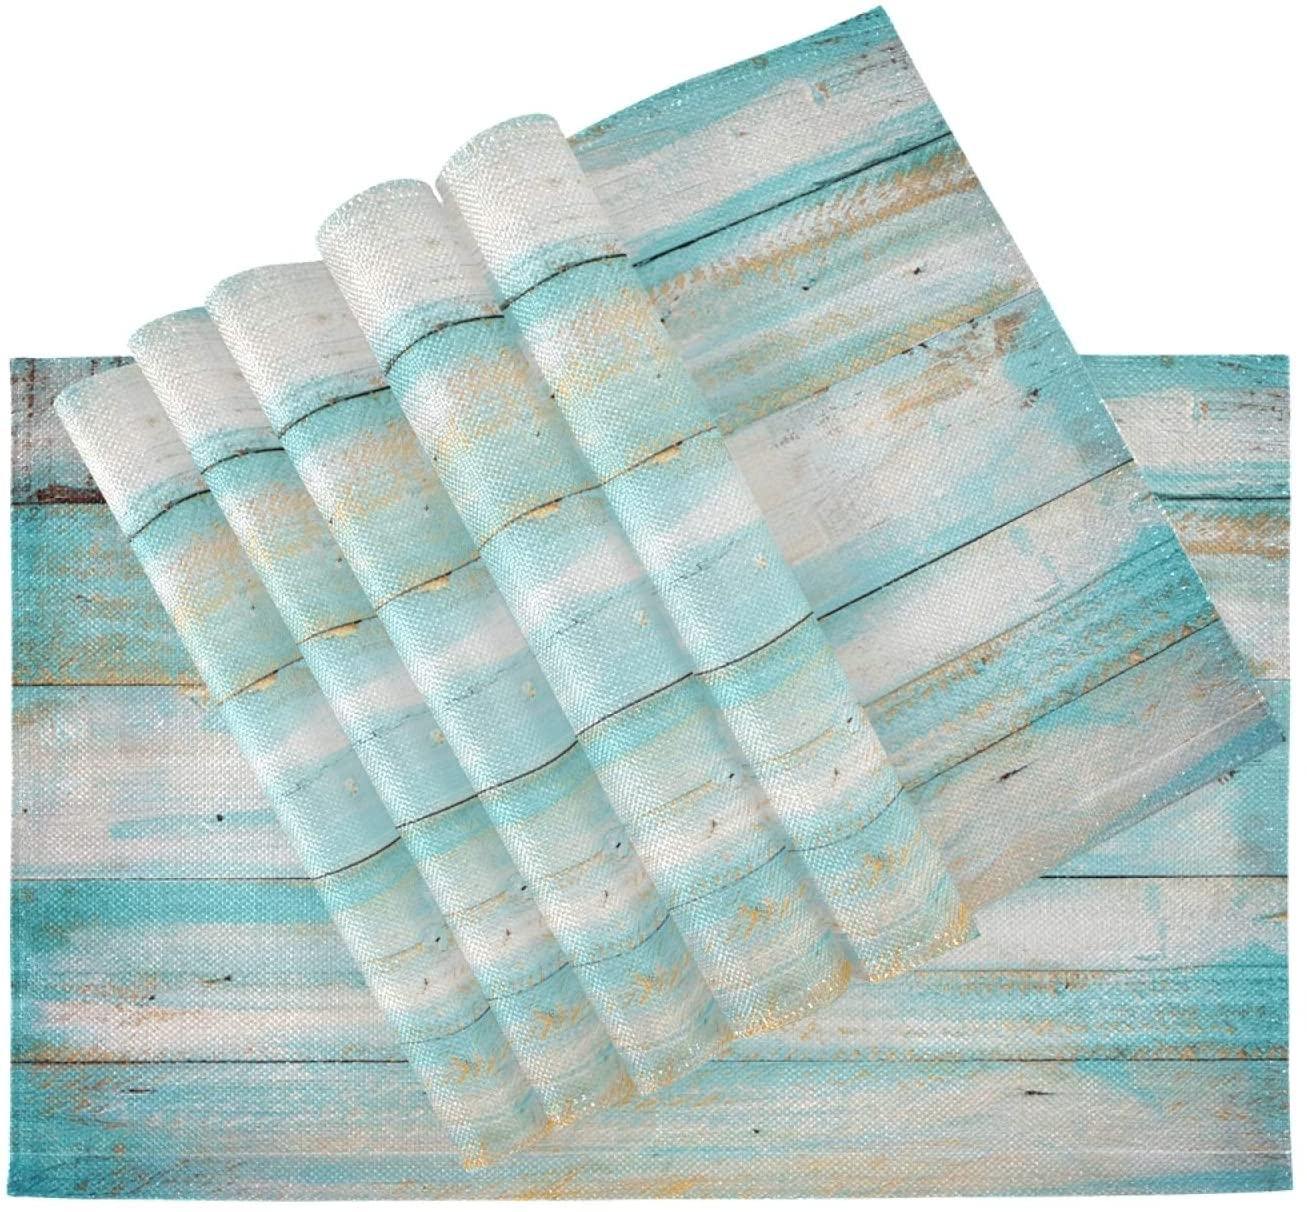 ALAZA Placemats Blue and White Vintage Wooden Borad Table Mats Washable Heat-Resistant Kitchen Place Mats for Dining Table Decoration 12 x 18 inch Set of 6